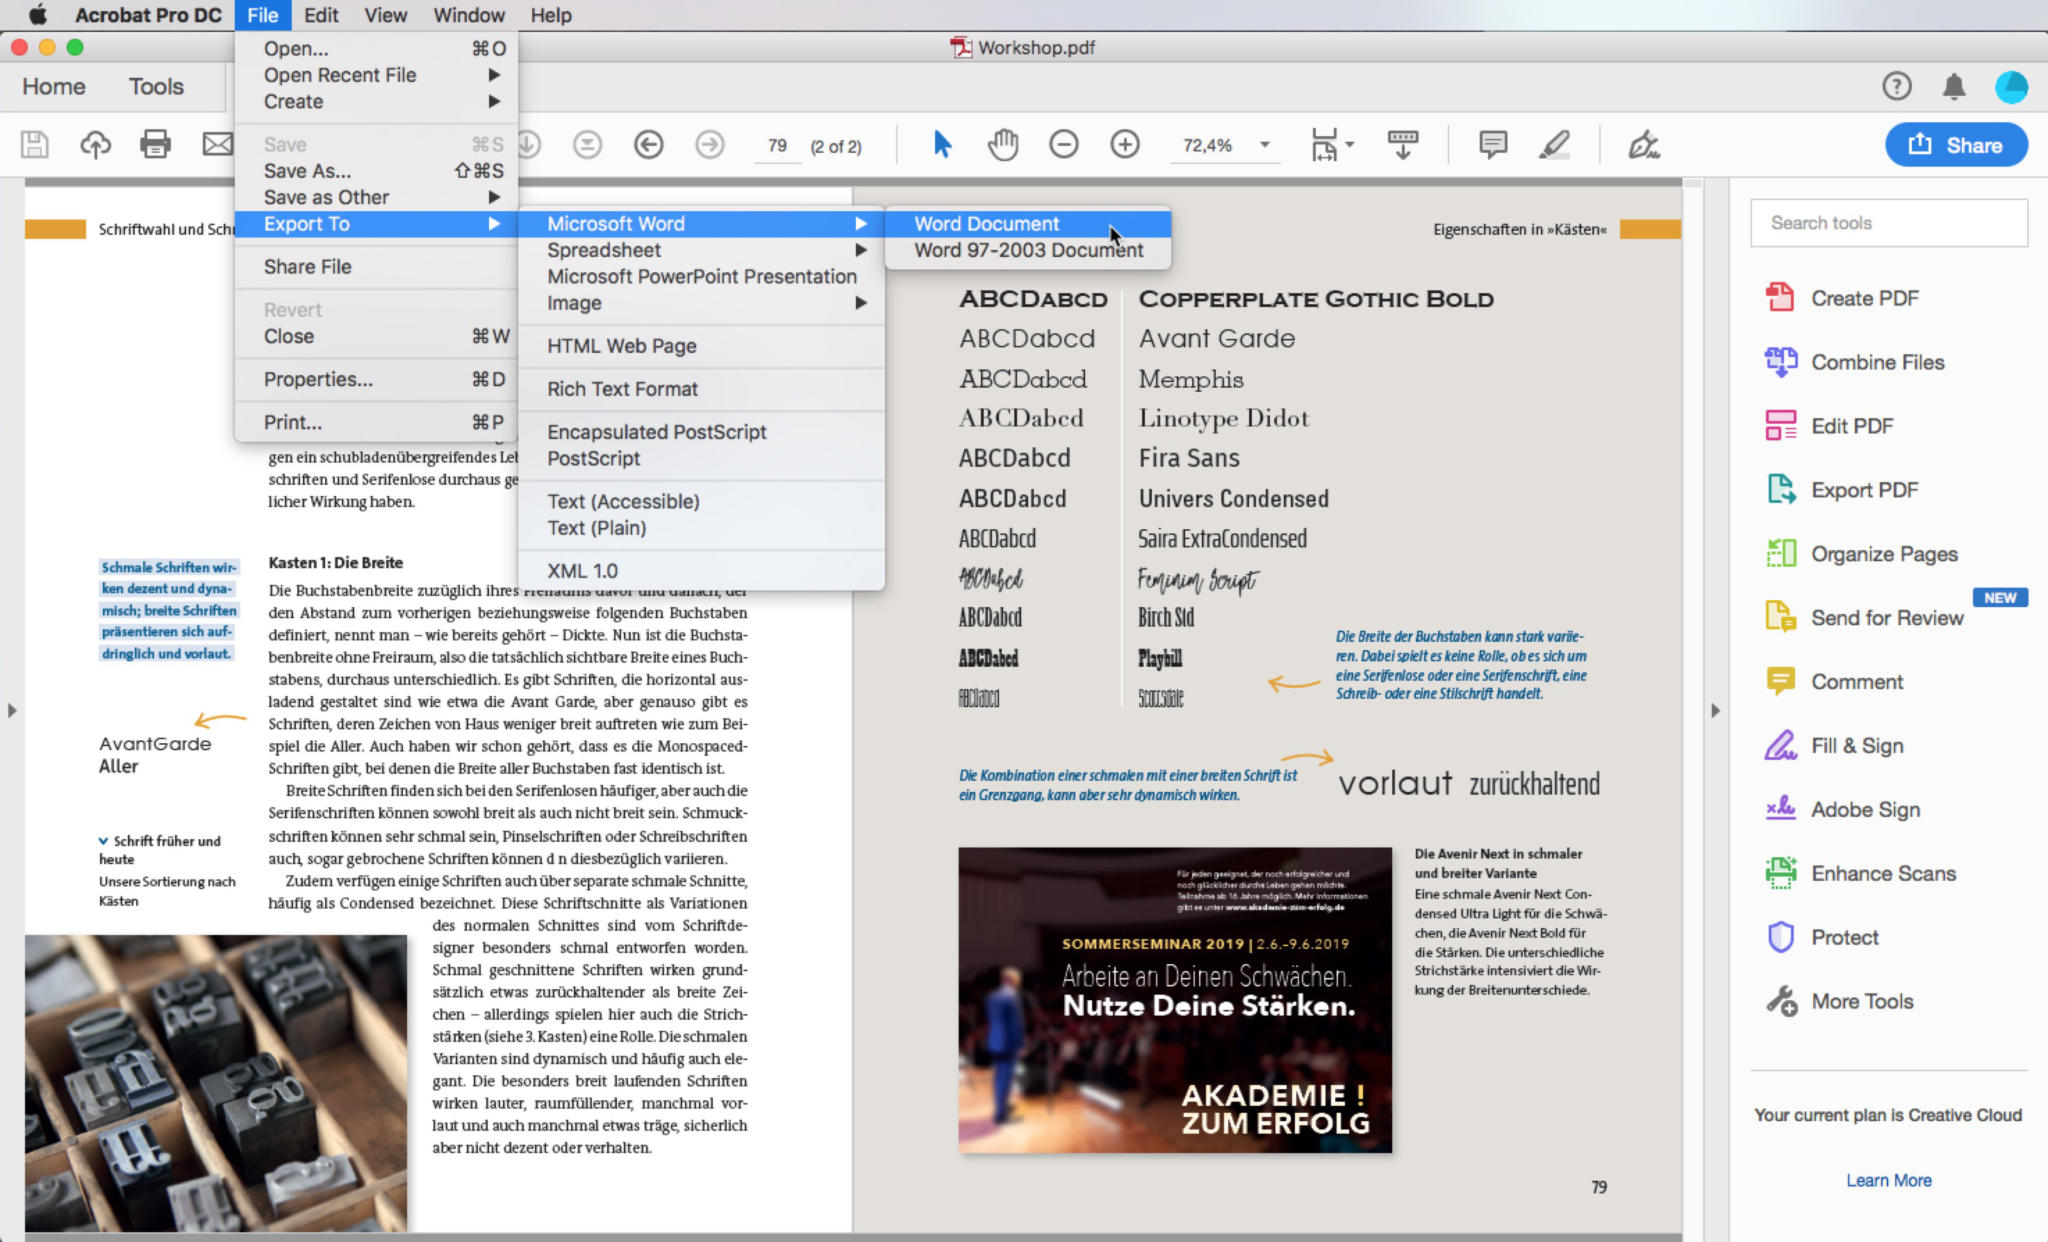 online tool to convert pdf to word document